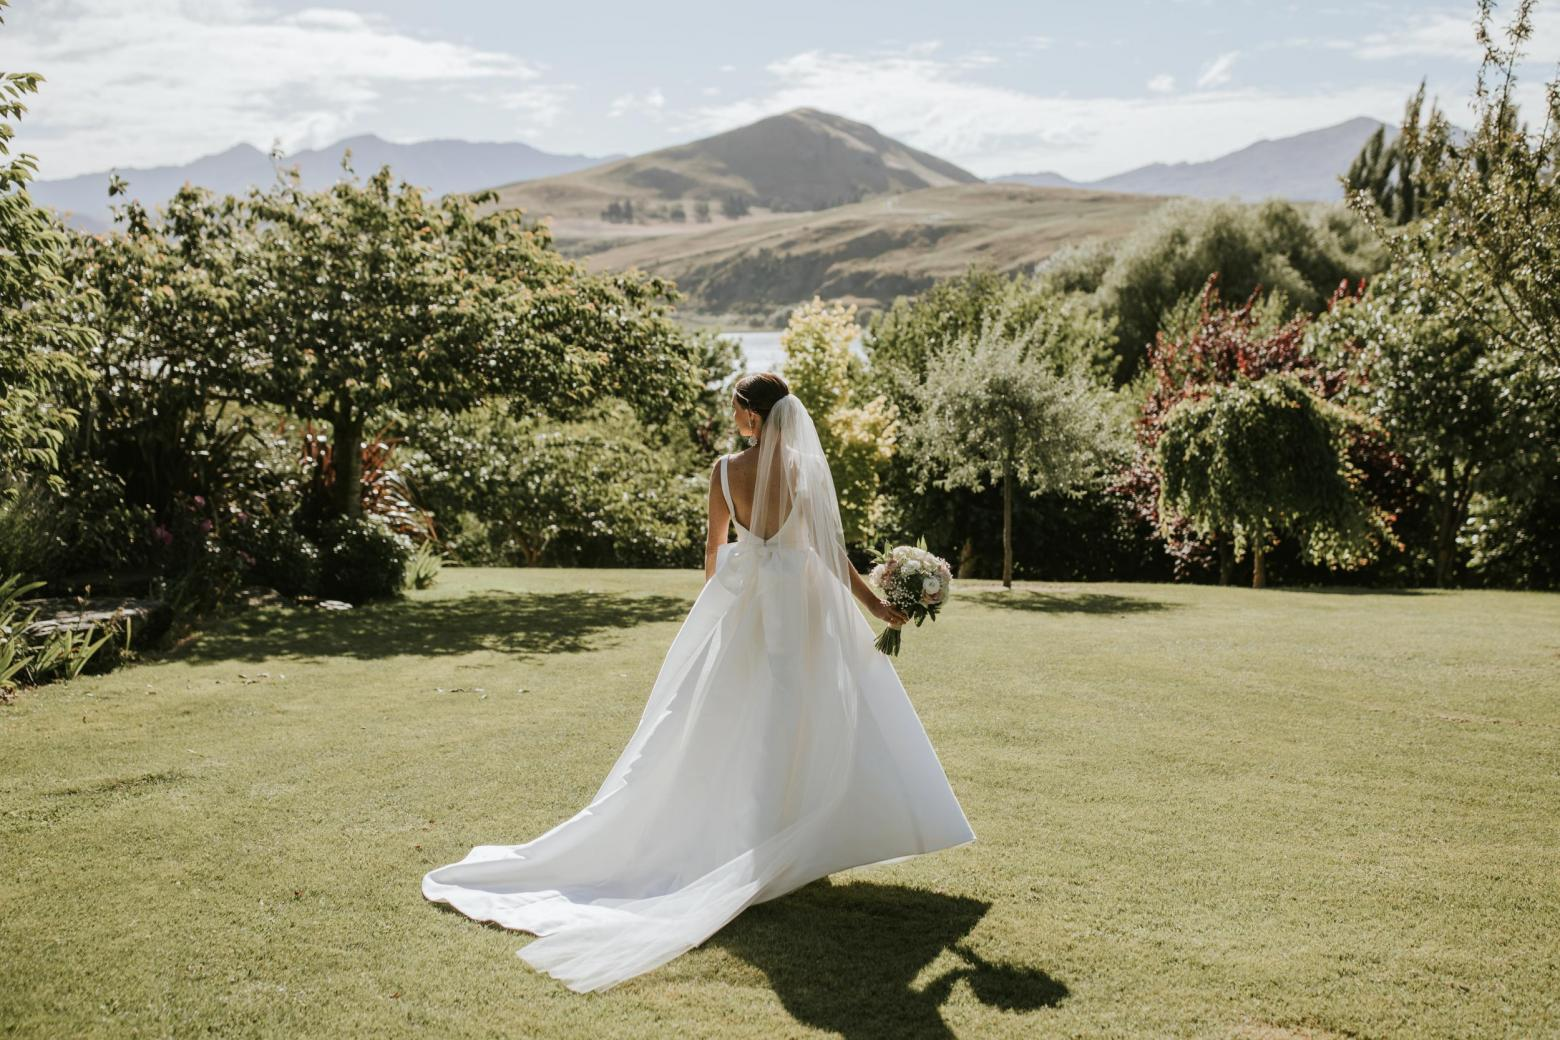 Real bride Madeleine wore the Bespoke Leonie/Camille wedding dress by Karen Willis Holmes.